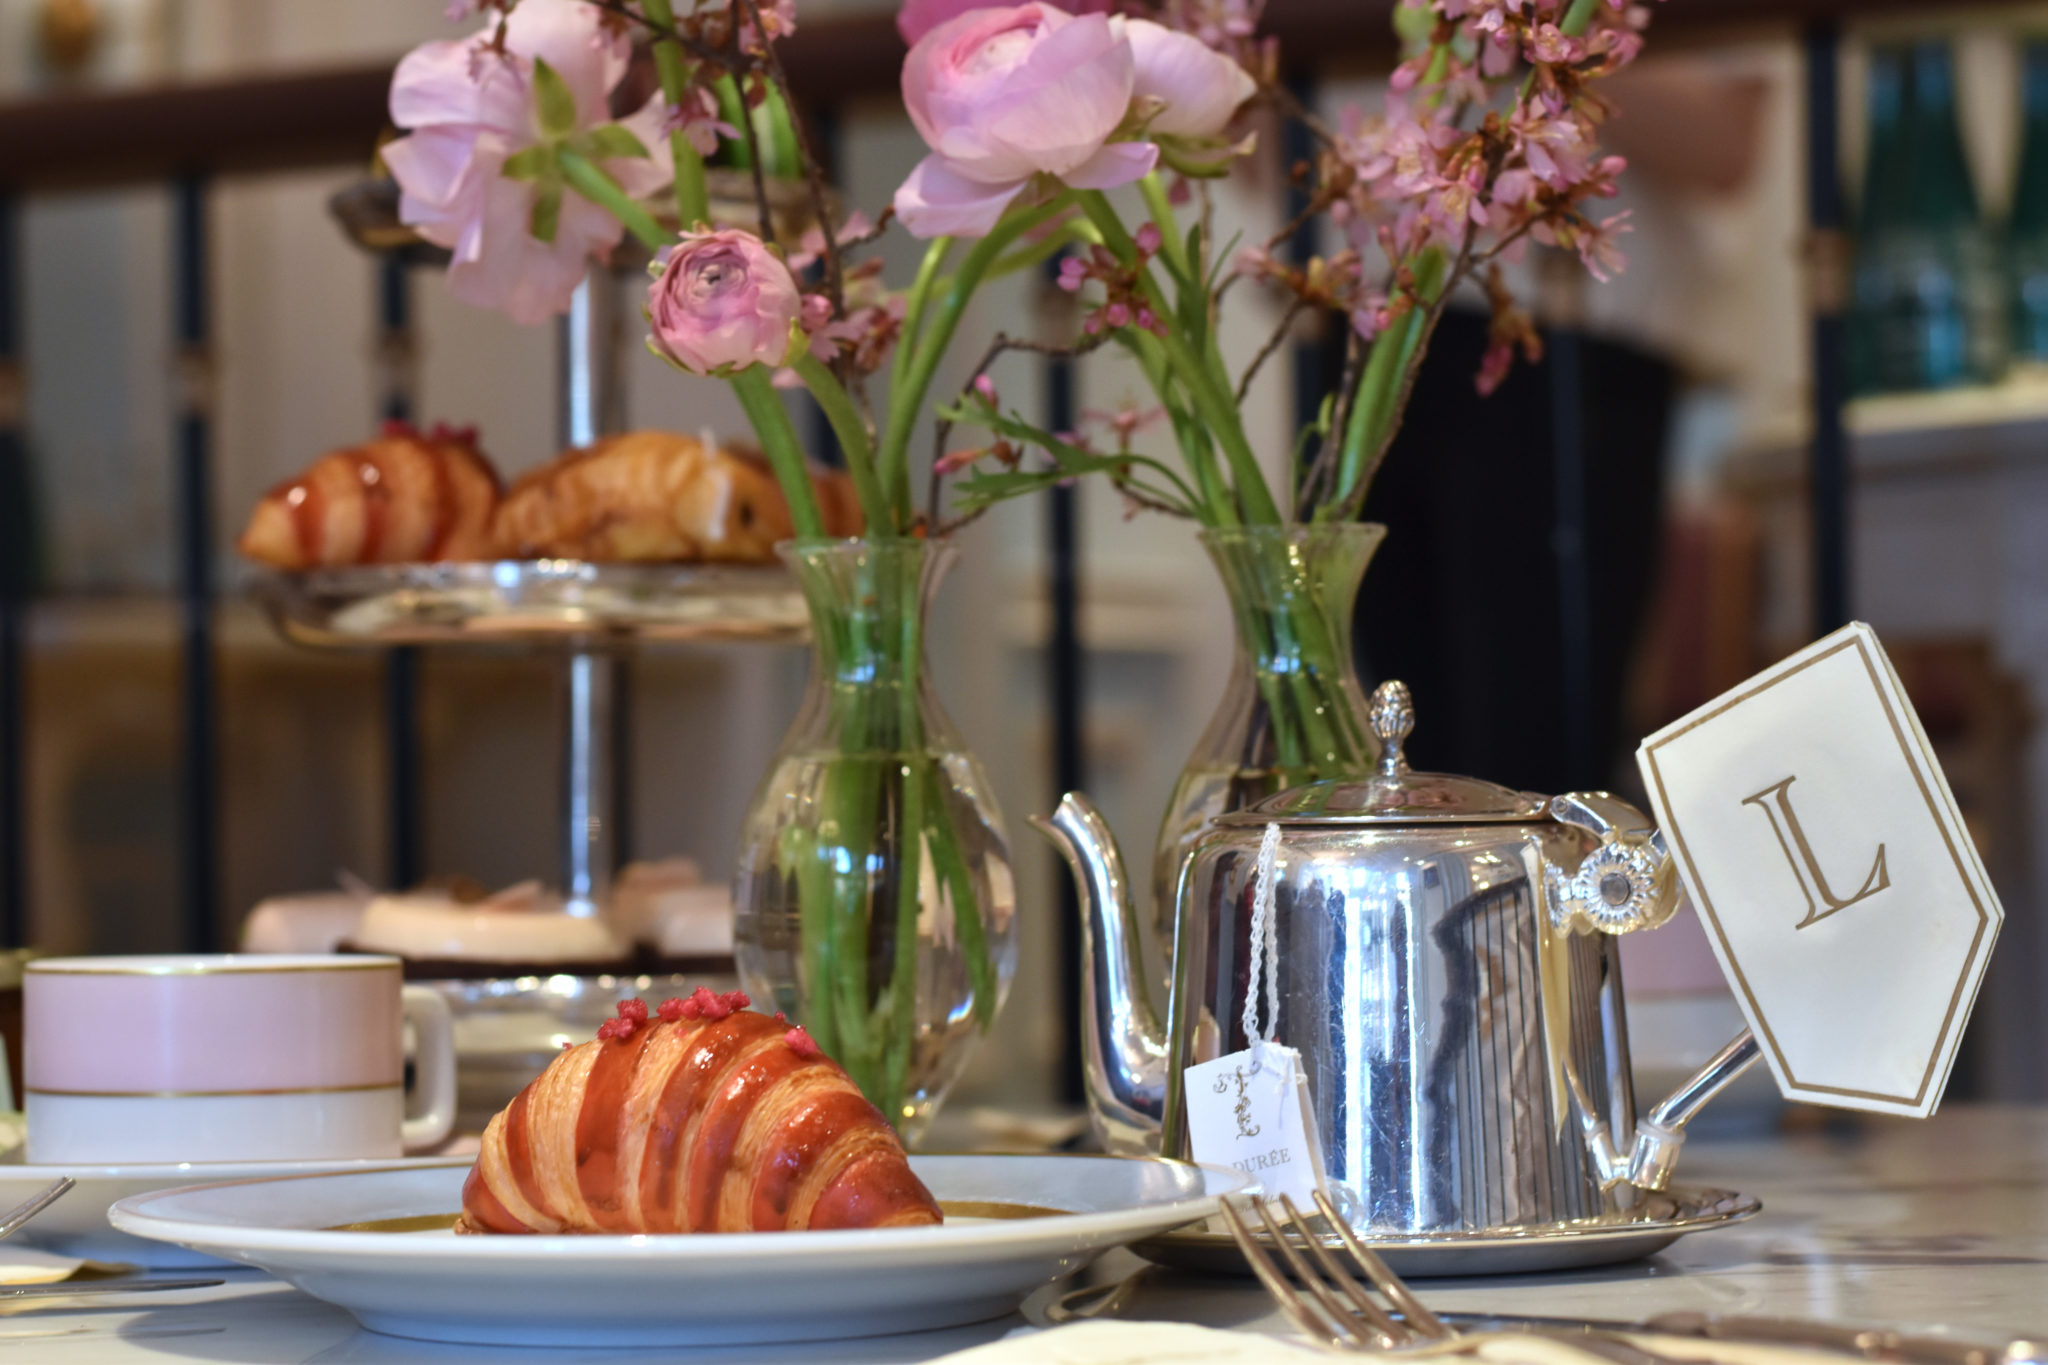 Tea at Ladurée: Testing new spring pastry additions - The